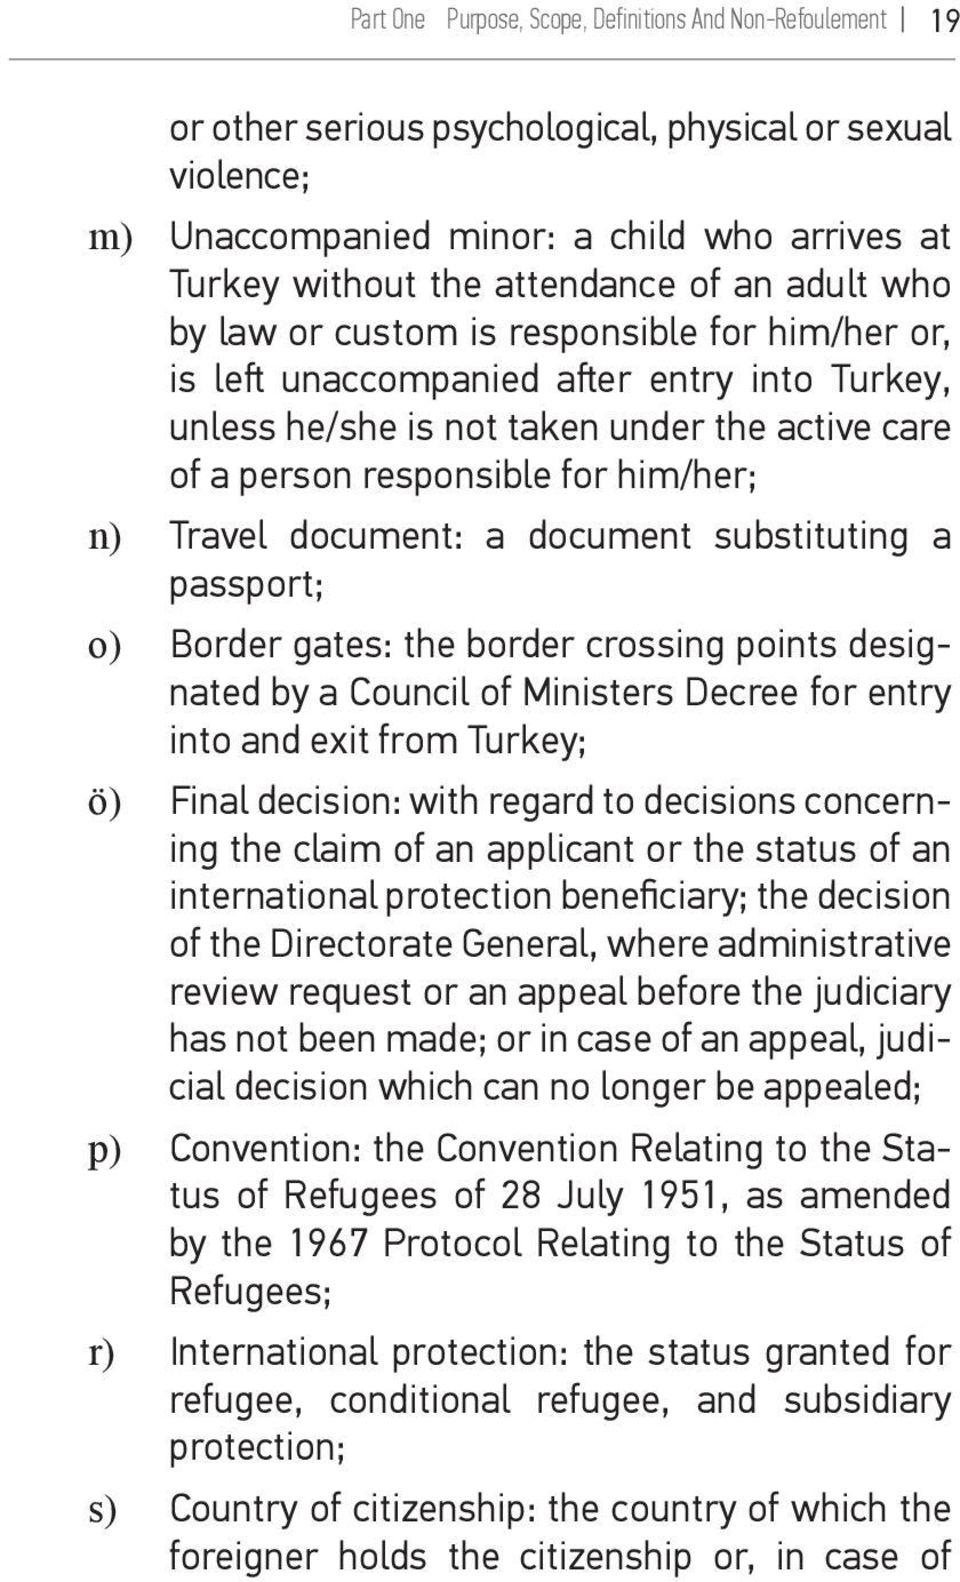 Travel document: a document substituting a passport; o) Border gates: the border crossing points designated by a Council of Ministers Decree for entry into and exit from Turkey; ö) Final decision: